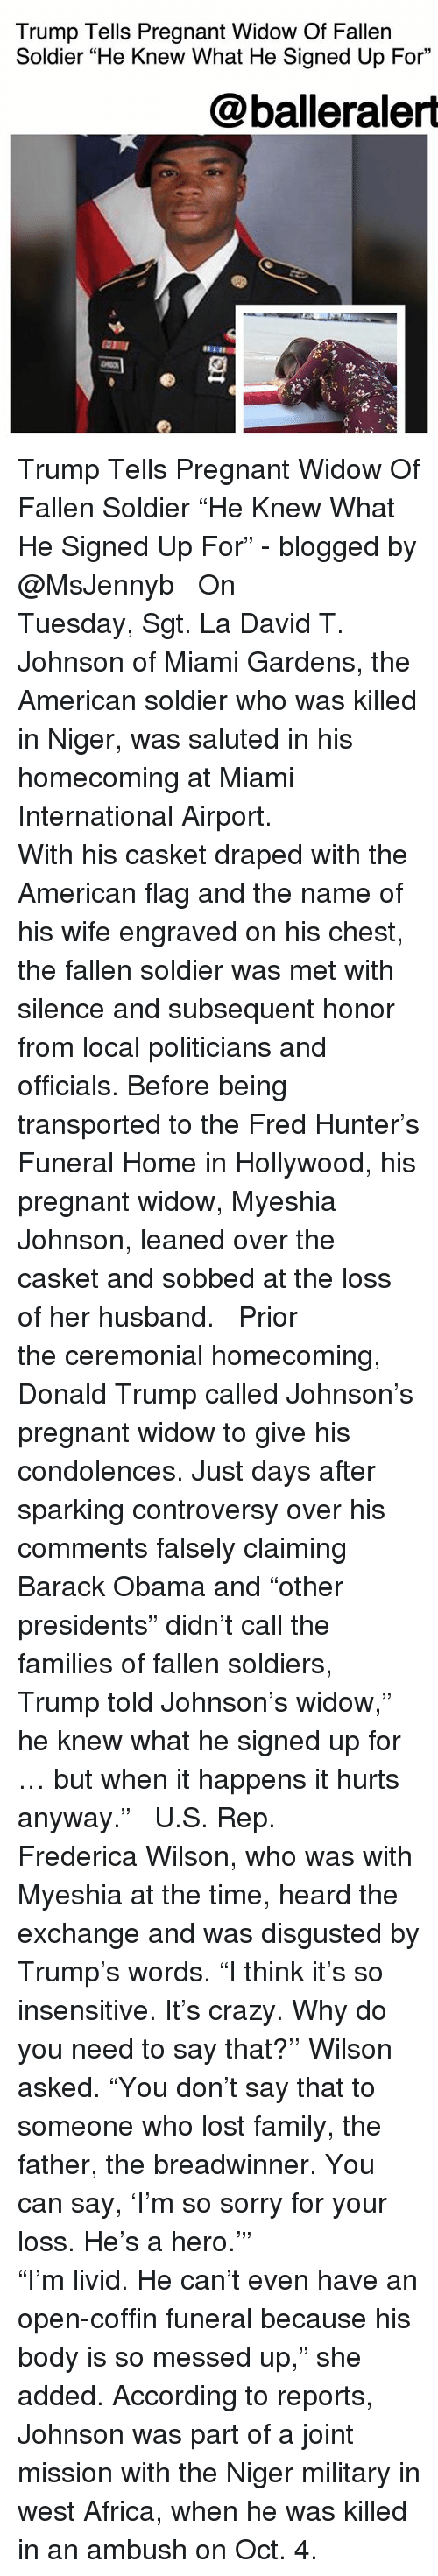 """Subsequent: Trump Tells Pregnant Widow Of Fallen  Soldier """"He Knew What He Signed Up For""""  @balleraler  臣111  2 Trump Tells Pregnant Widow Of Fallen Soldier """"He Knew What He Signed Up For"""" - blogged by @MsJennyb ⠀⠀⠀⠀⠀⠀⠀ ⠀⠀⠀⠀⠀⠀⠀ On Tuesday, Sgt. La David T. Johnson of Miami Gardens, the American soldier who was killed in Niger, was saluted in his homecoming at Miami International Airport. ⠀⠀⠀⠀⠀⠀⠀ ⠀⠀⠀⠀⠀⠀⠀ With his casket draped with the American flag and the name of his wife engraved on his chest, the fallen soldier was met with silence and subsequent honor from local politicians and officials. Before being transported to the Fred Hunter's Funeral Home in Hollywood, his pregnant widow, Myeshia Johnson, leaned over the casket and sobbed at the loss of her husband. ⠀⠀⠀⠀⠀⠀⠀ ⠀⠀⠀⠀⠀⠀⠀ Prior the ceremonial homecoming, Donald Trump called Johnson's pregnant widow to give his condolences. Just days after sparking controversy over his comments falsely claiming Barack Obama and """"other presidents"""" didn't call the families of fallen soldiers, Trump told Johnson's widow,"""" he knew what he signed up for … but when it happens it hurts anyway."""" ⠀⠀⠀⠀⠀⠀⠀ ⠀⠀⠀⠀⠀⠀⠀ U.S. Rep. Frederica Wilson, who was with Myeshia at the time, heard the exchange and was disgusted by Trump's words. """"I think it's so insensitive. It's crazy. Why do you need to say that?'' Wilson asked. """"You don't say that to someone who lost family, the father, the breadwinner. You can say, 'I'm so sorry for your loss. He's a hero.'"""" ⠀⠀⠀⠀⠀⠀⠀ ⠀⠀⠀⠀⠀⠀⠀ """"I'm livid. He can't even have an open-coffin funeral because his body is so messed up,"""" she added. According to reports, Johnson was part of a joint mission with the Niger military in west Africa, when he was killed in an ambush on Oct. 4."""